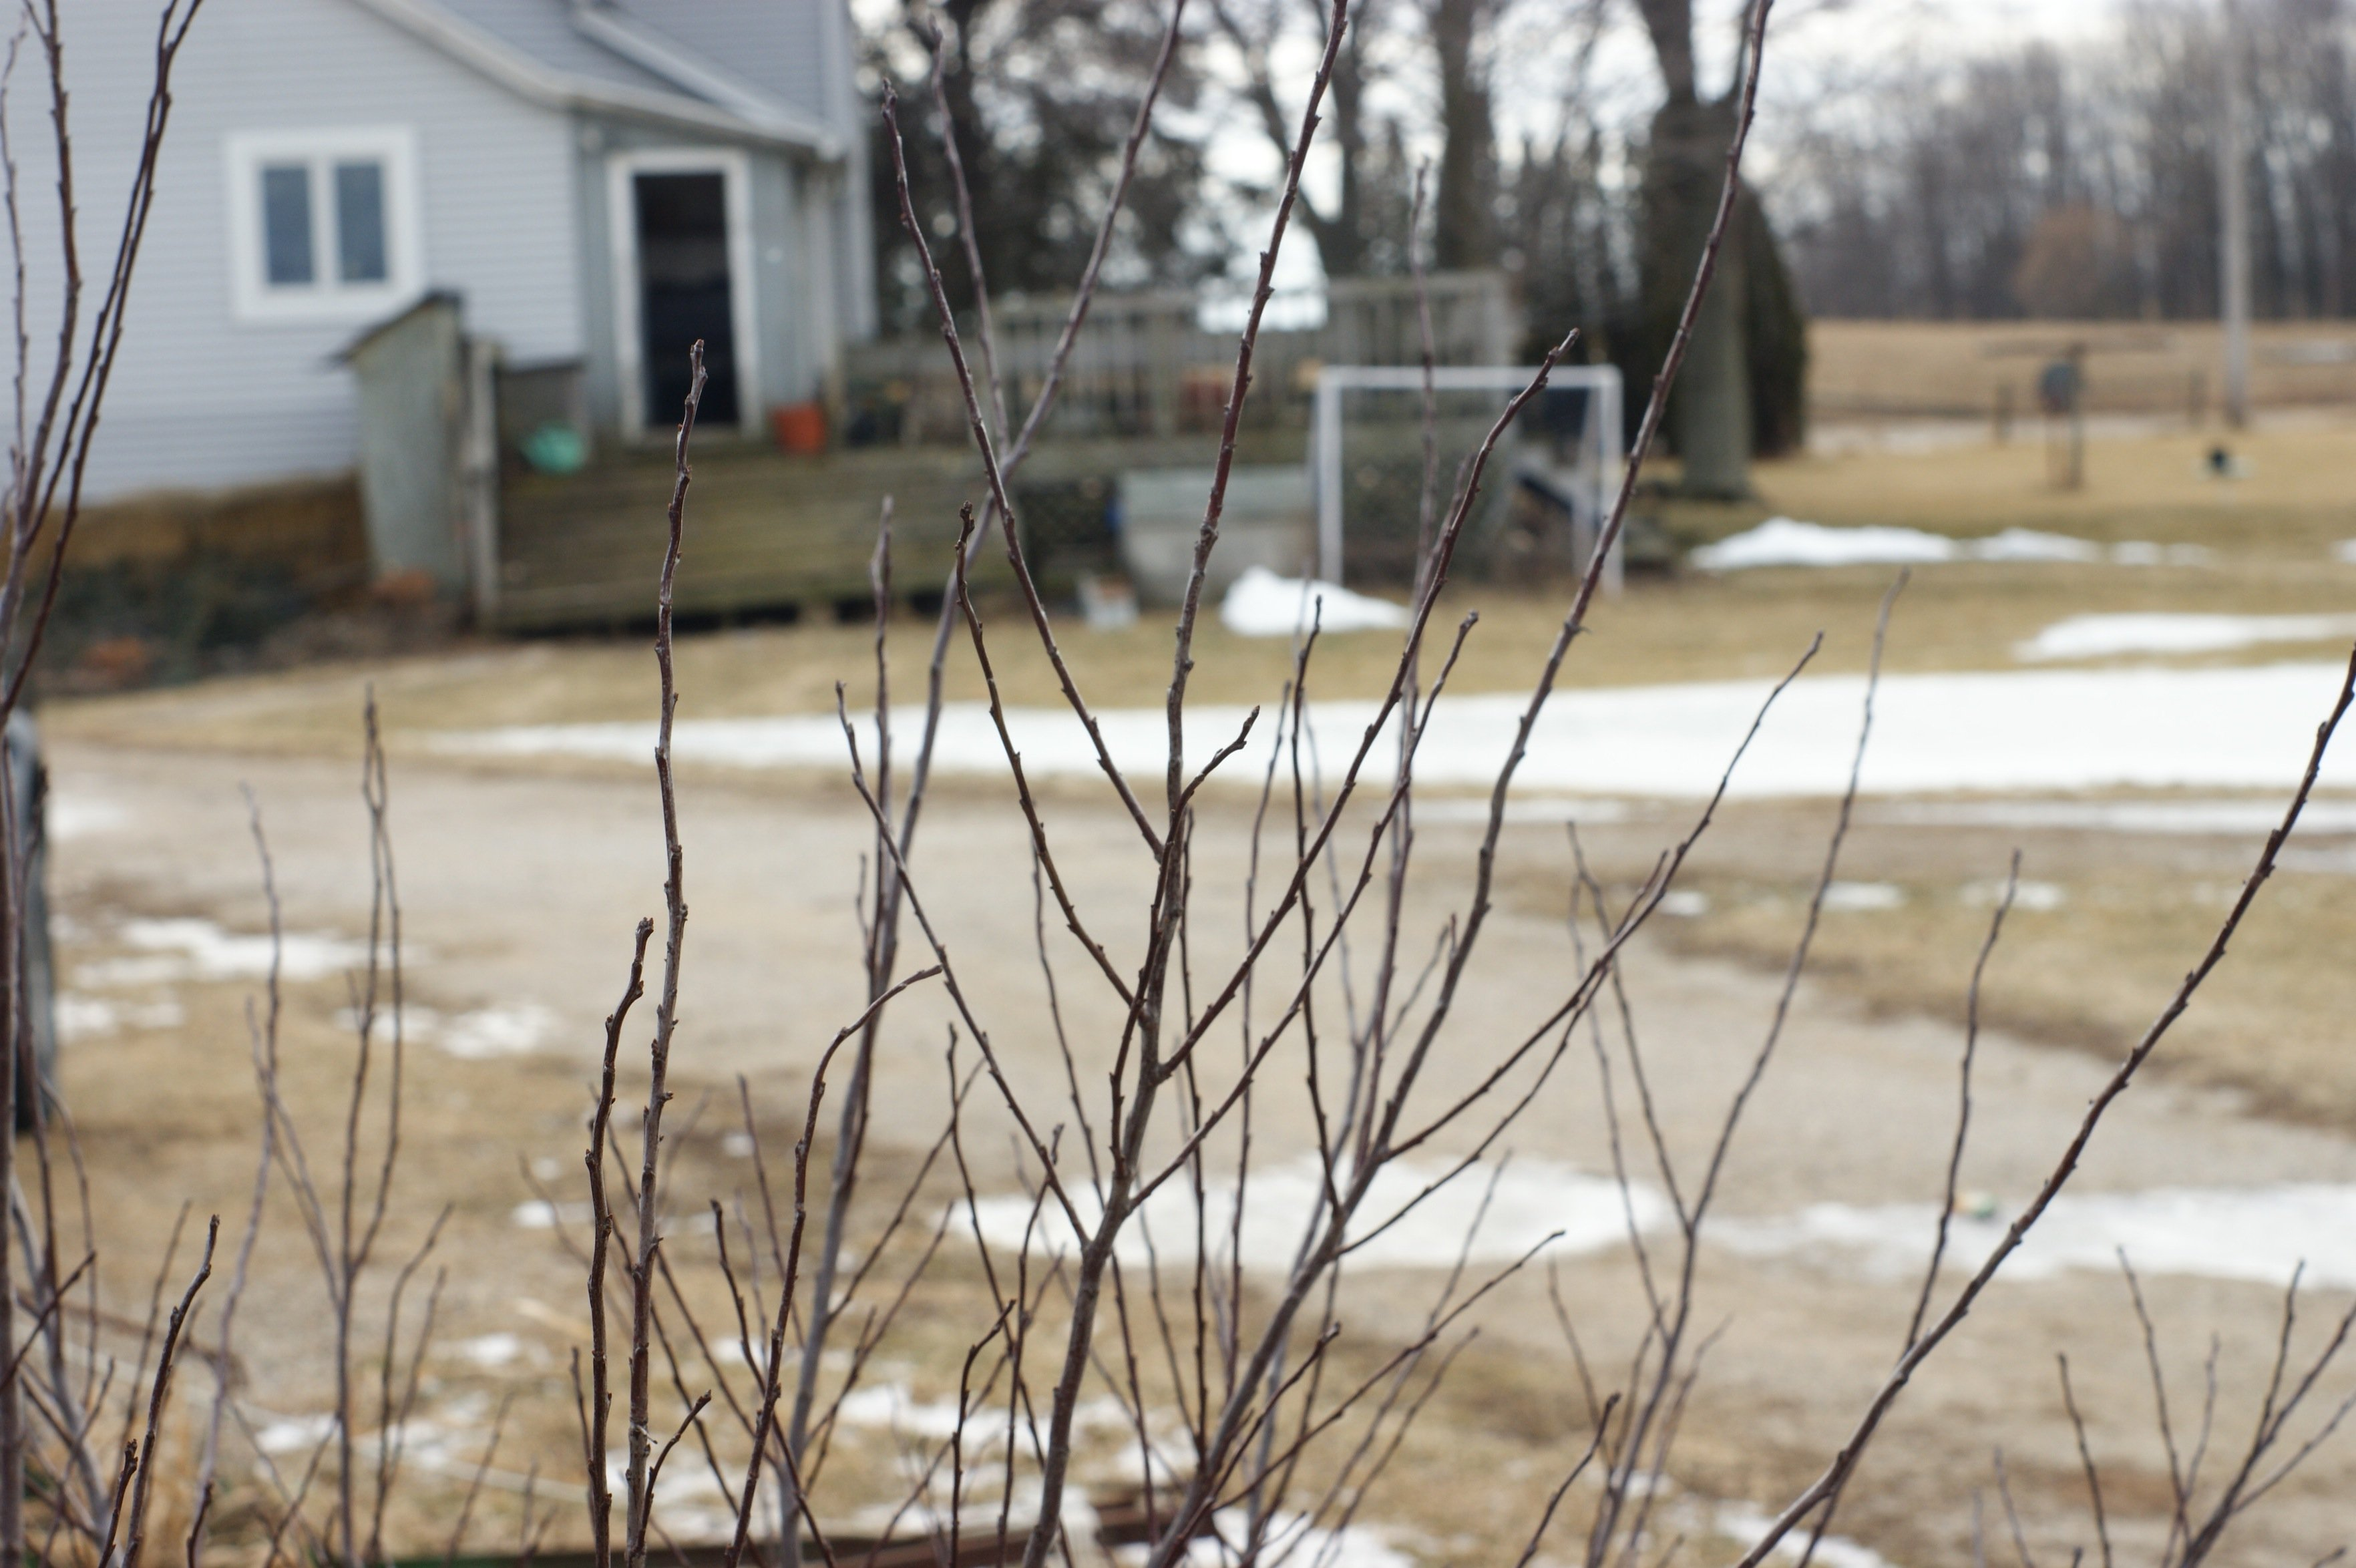 Branches in front of farm house